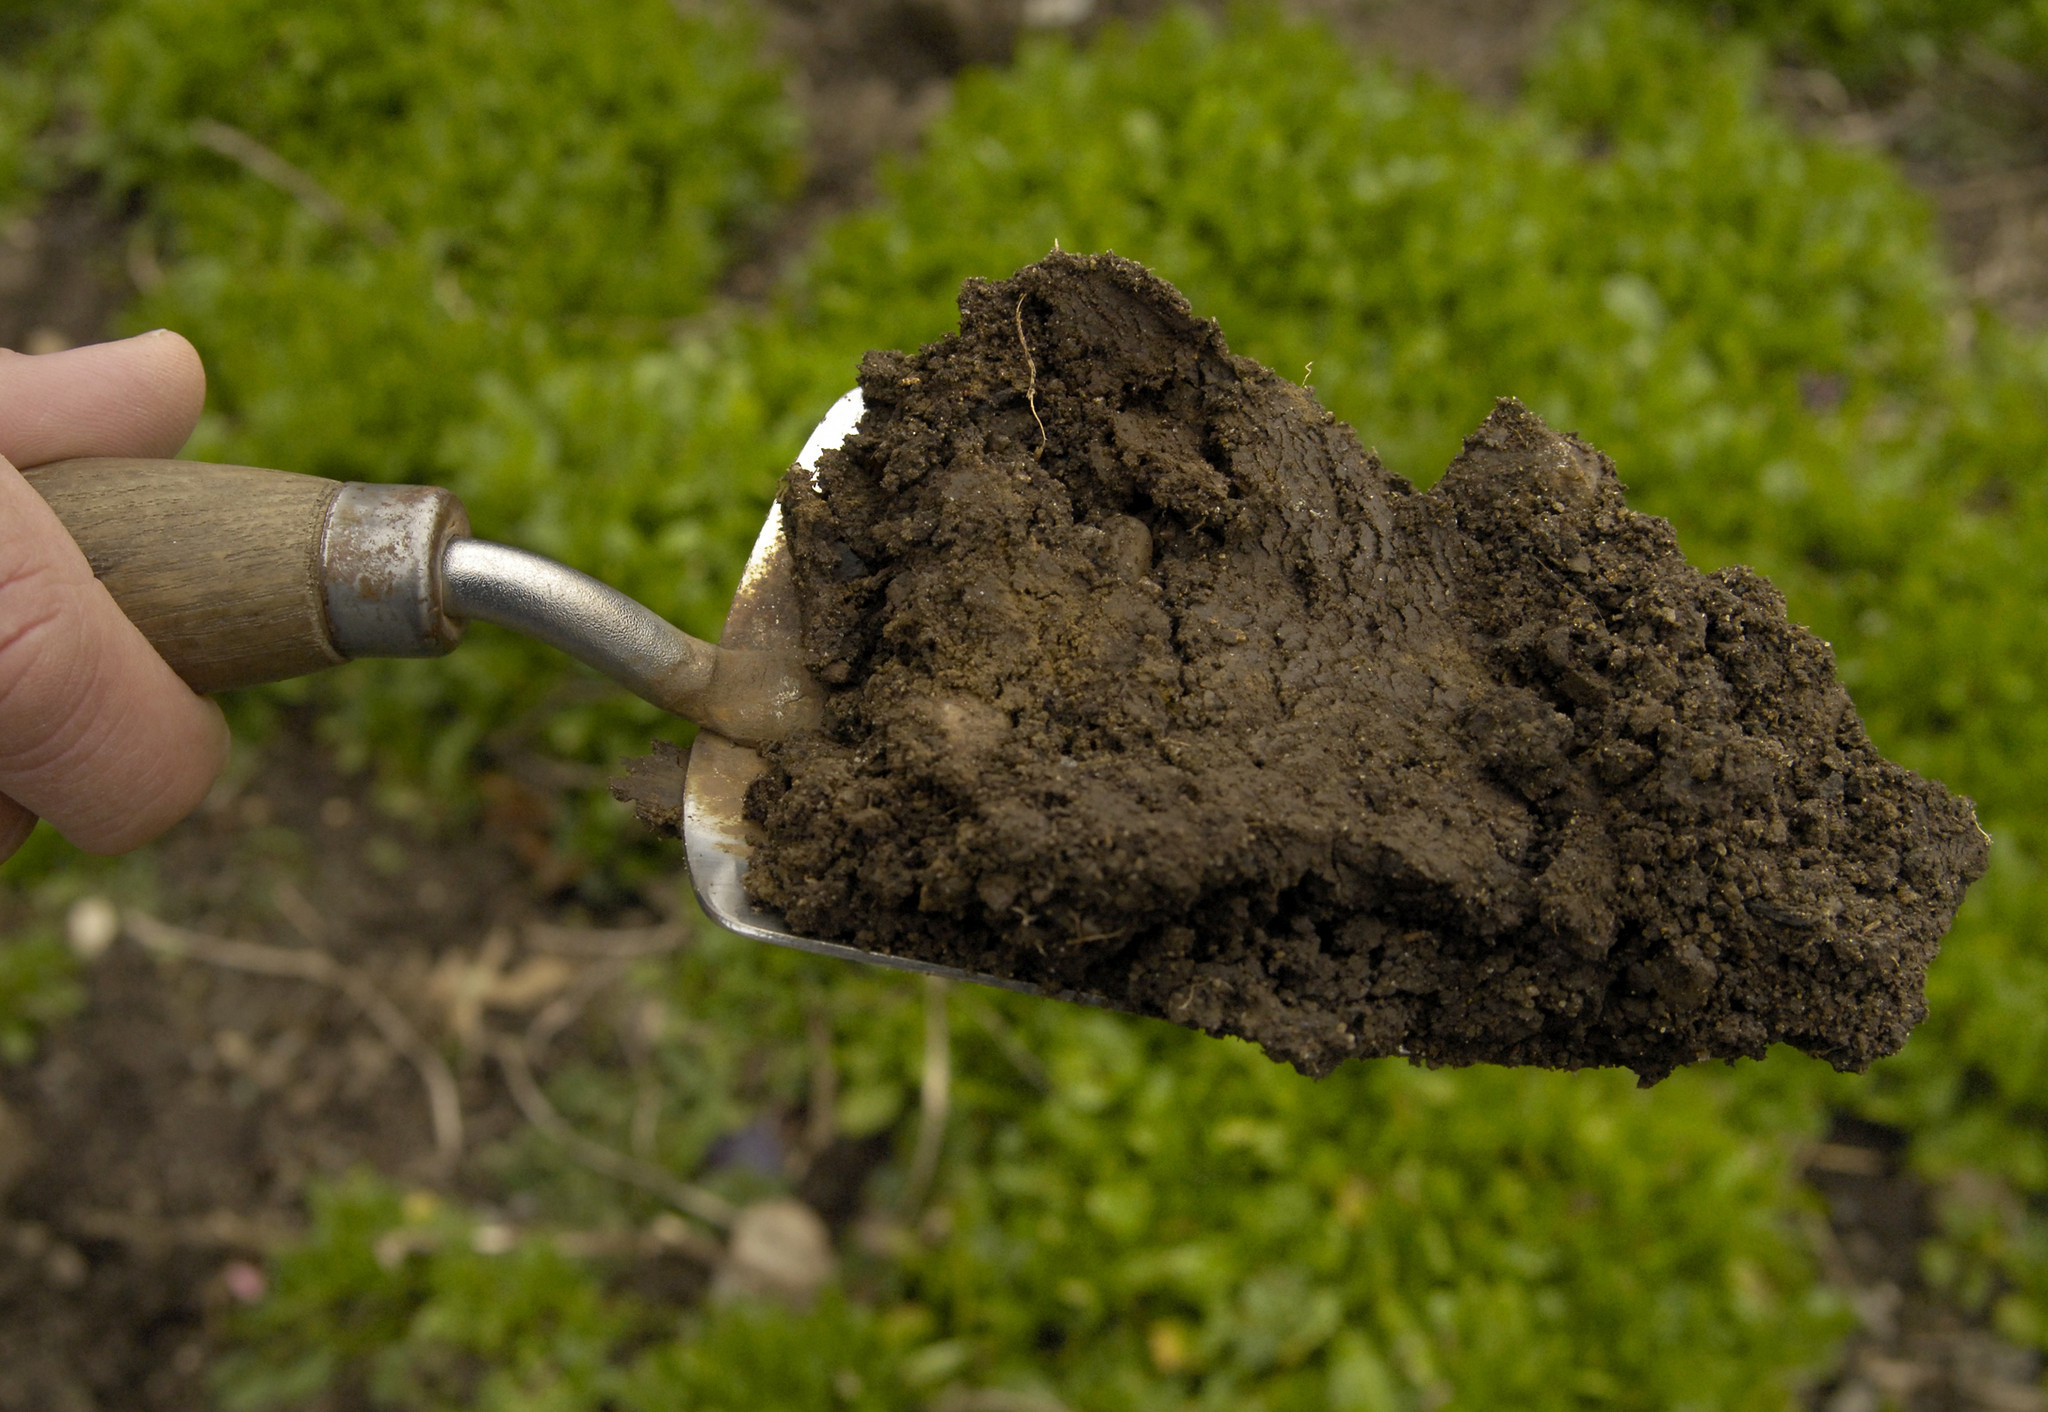 Garden Q&A: How can you tell if soil is \'workable\'? - Baltimore Sun